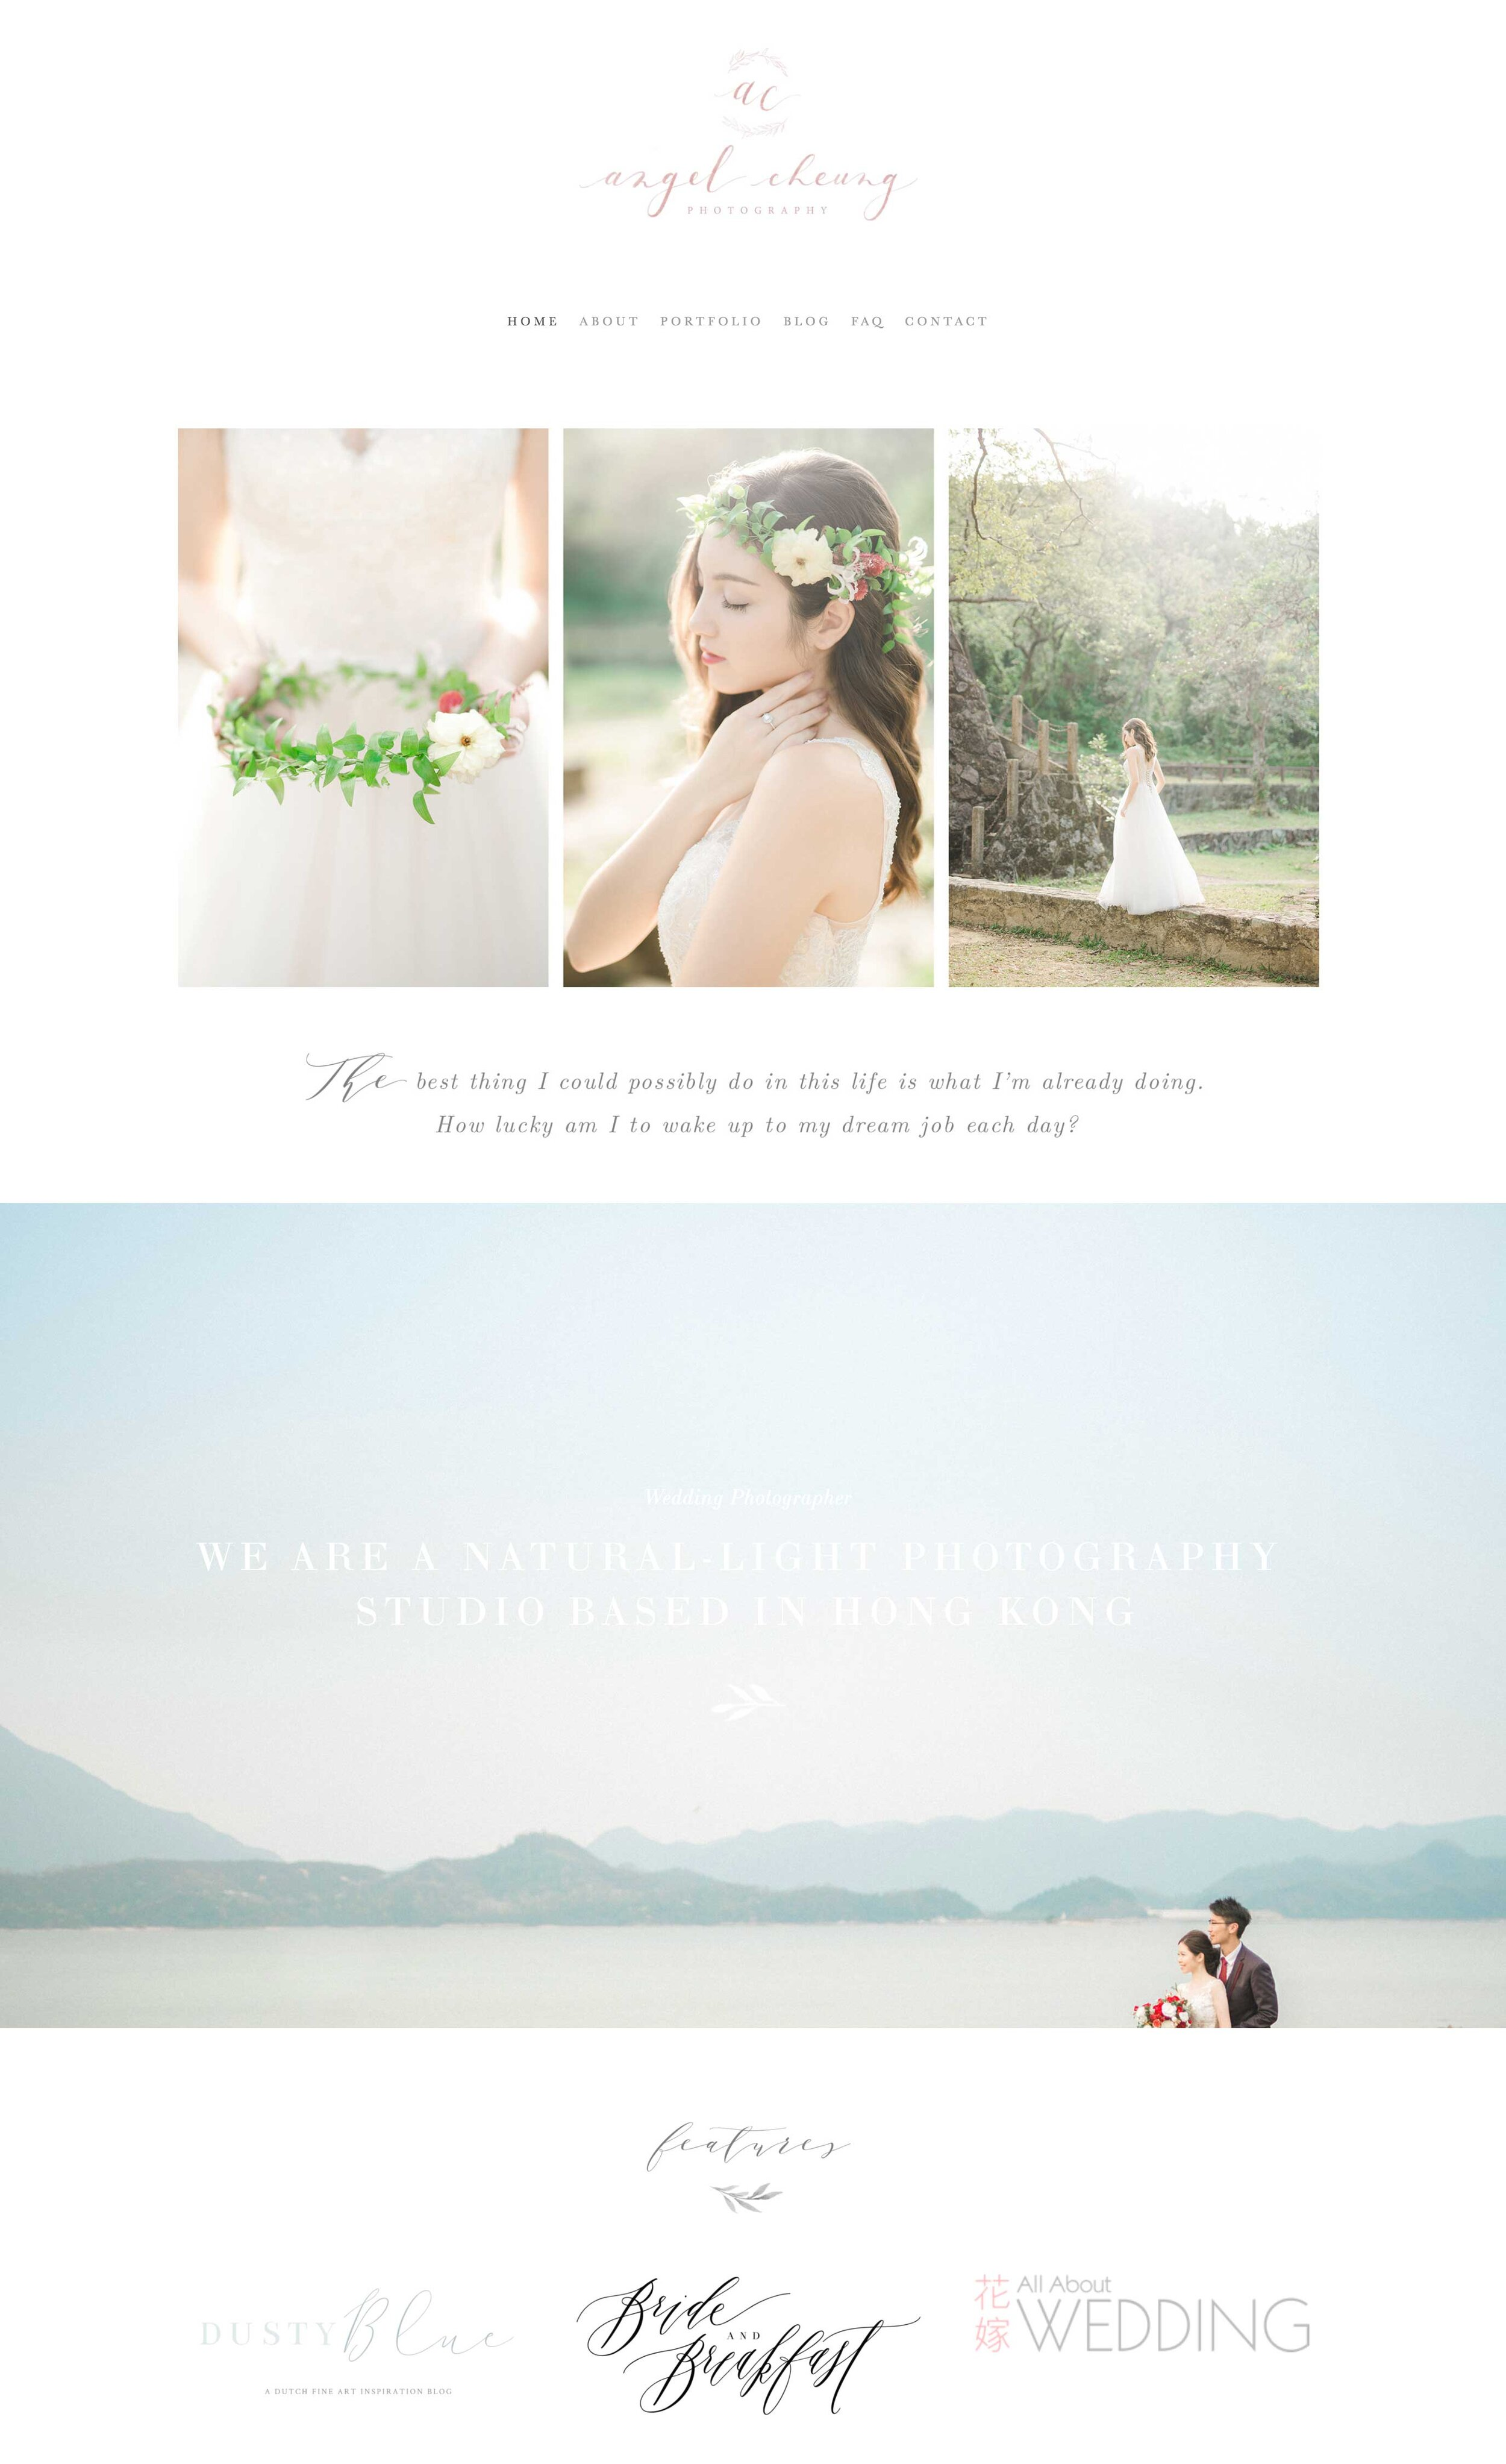 Squarespace design templates for photographers